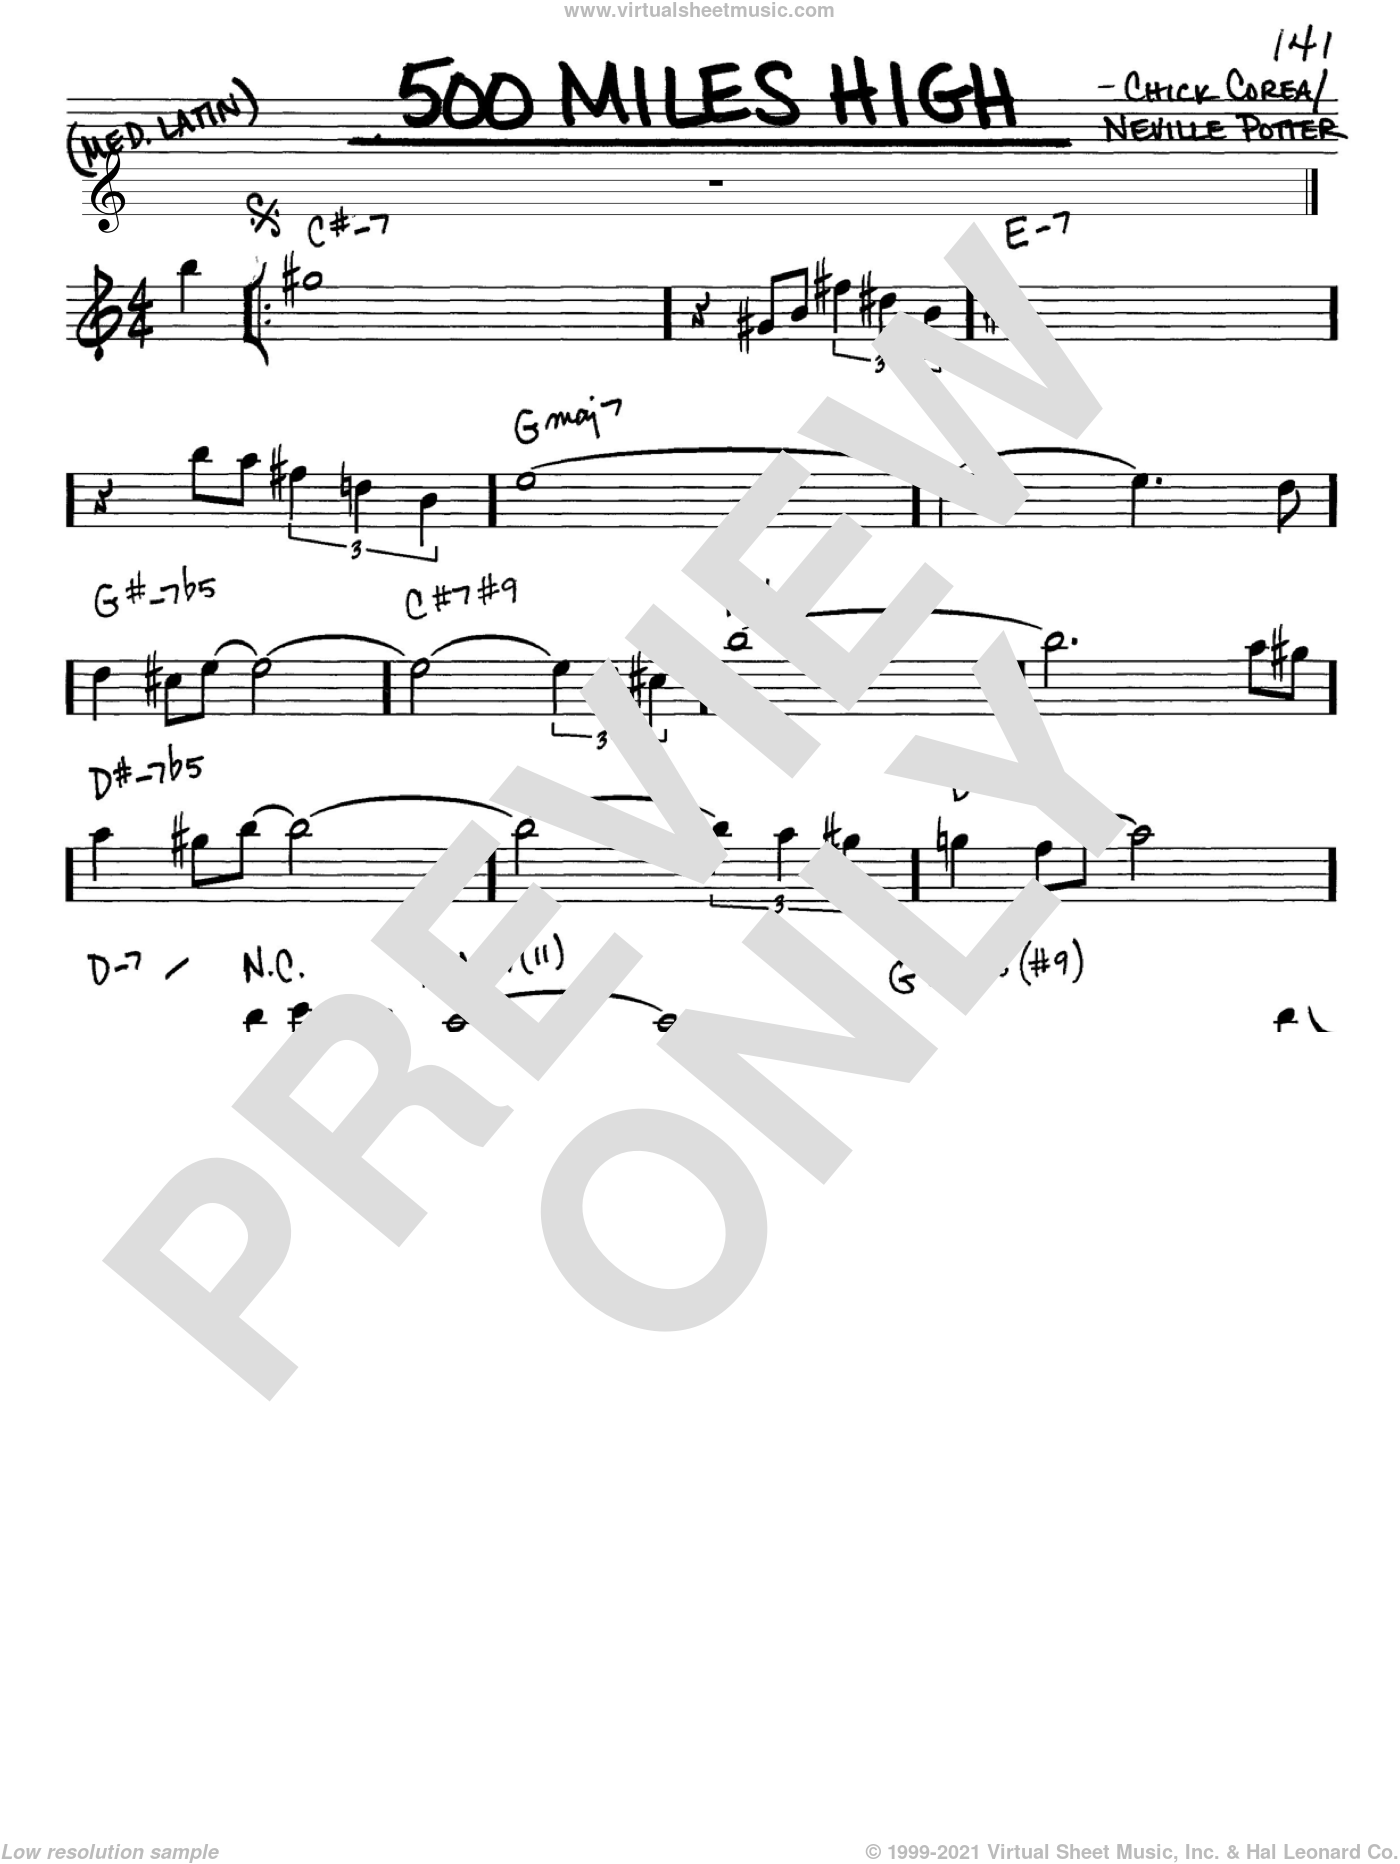 500 Miles High sheet music for voice and other instruments (Eb) by Neville Potter and Chick Corea. Score Image Preview.